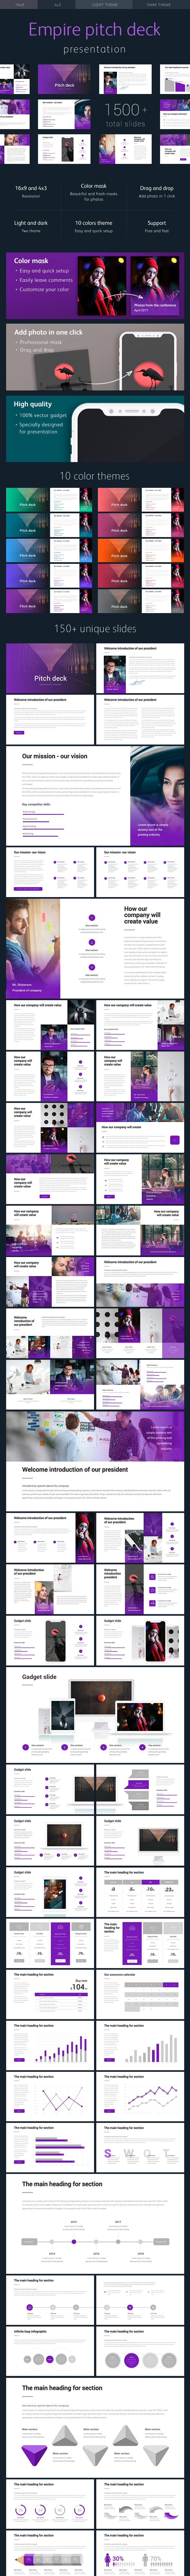 Pitch Deck Empire Powerpoint Template - Pitch Deck PowerPoint Templates